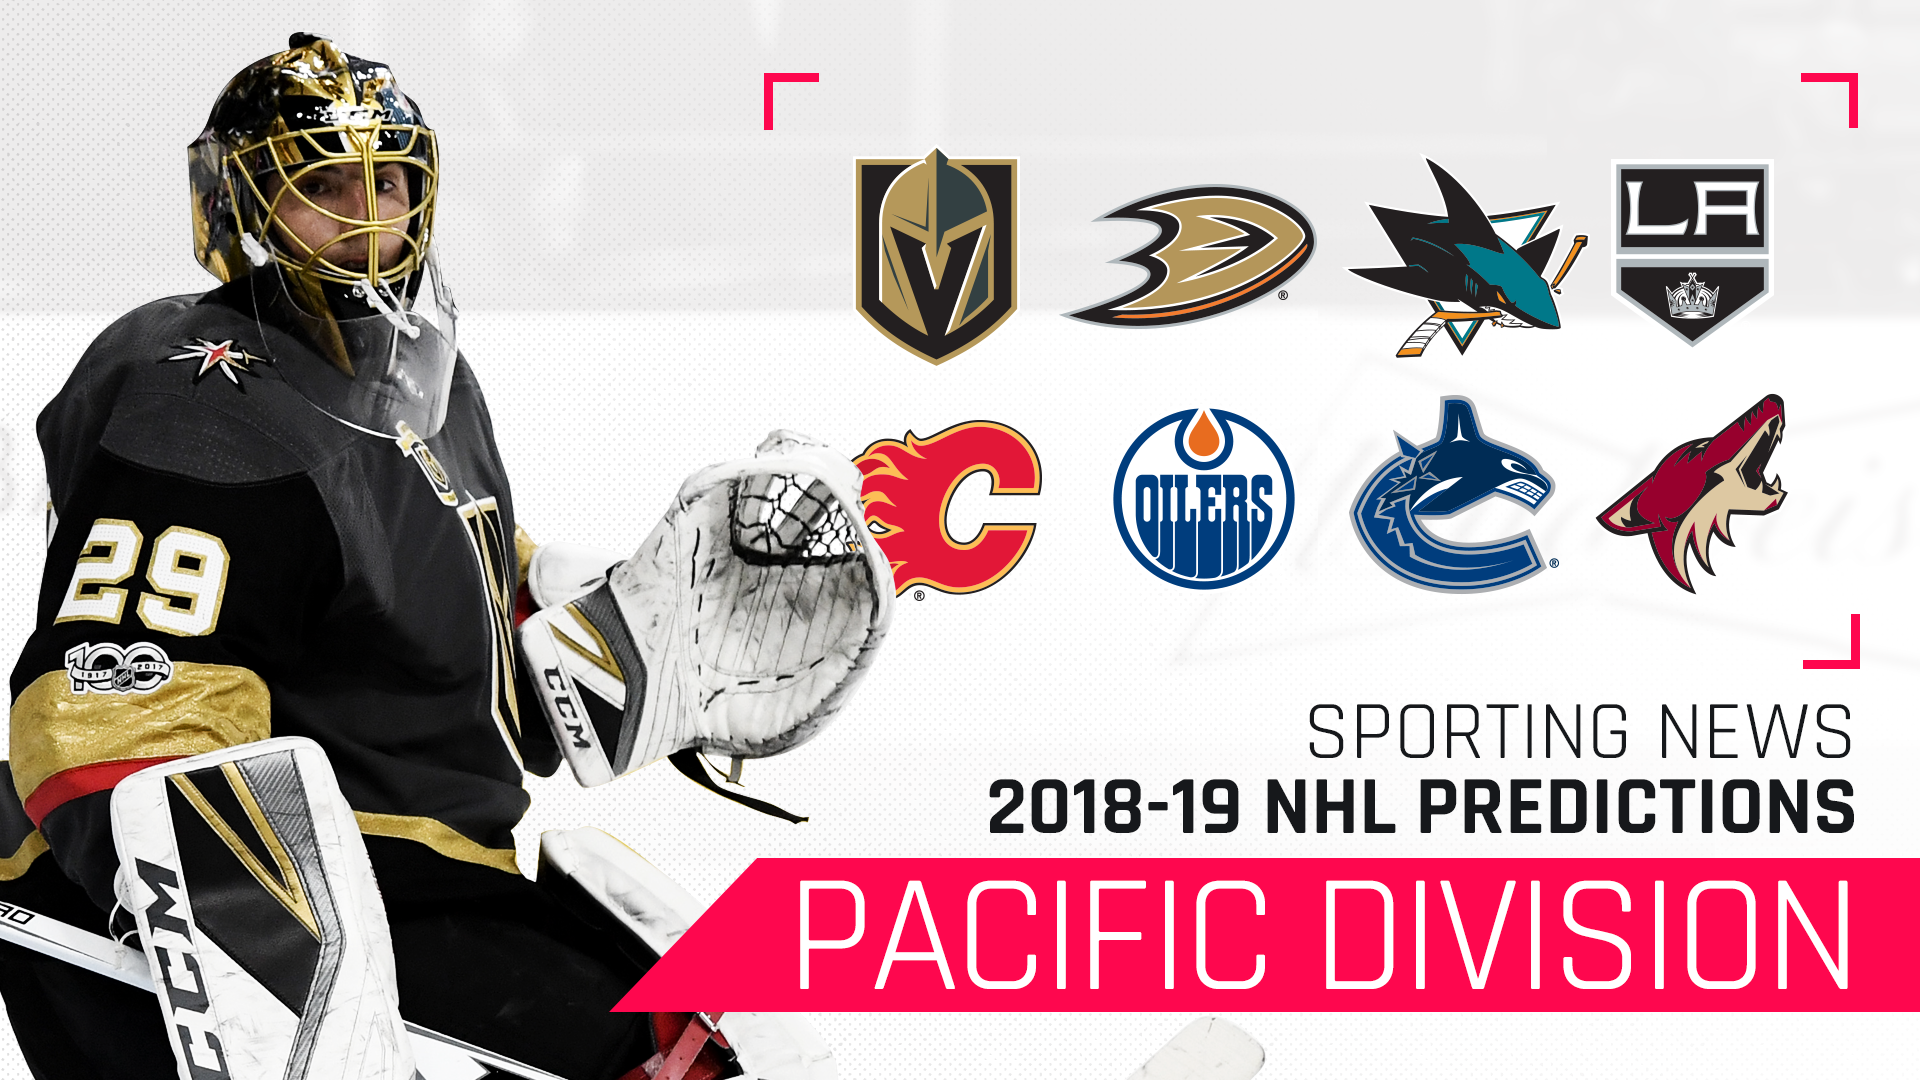 Nhl-pacific-preview-092618-ftr_1273oudtdvsts19onmgvrp4qtl